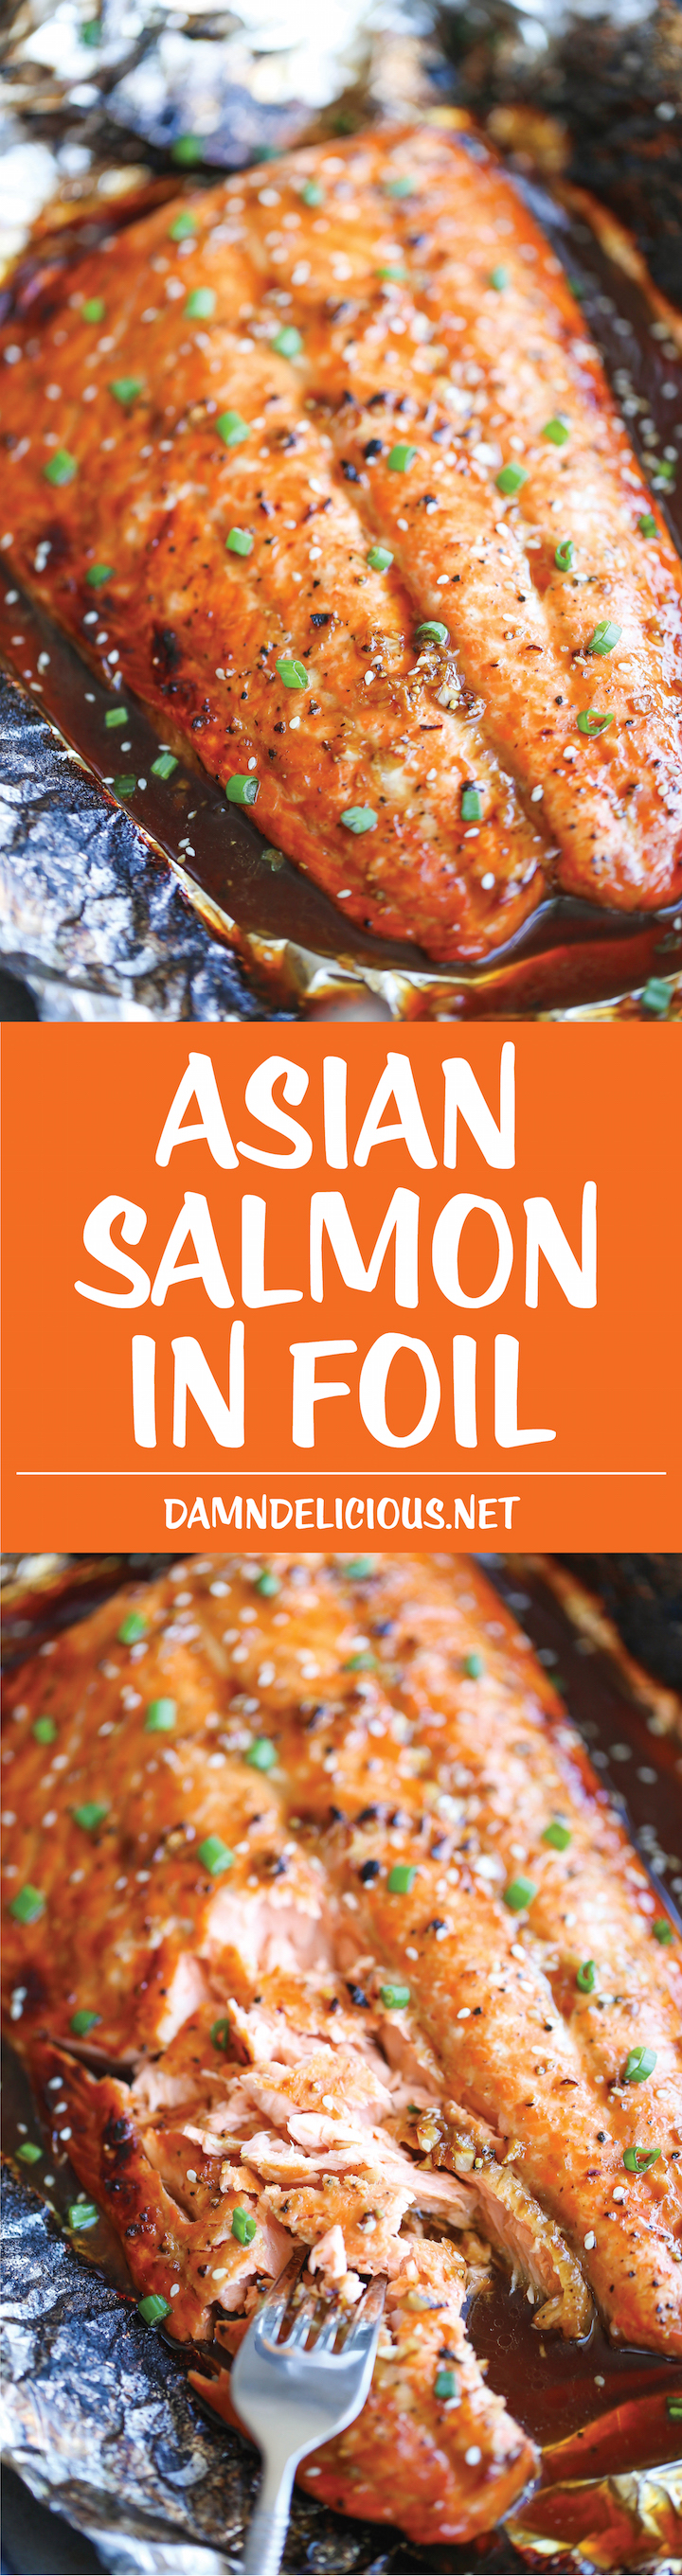 Asian Salmon In Foil Damn Delicious Origamisworddiagram Meen Curry Visual Instructions Make Origami The Best And Easiest Way To